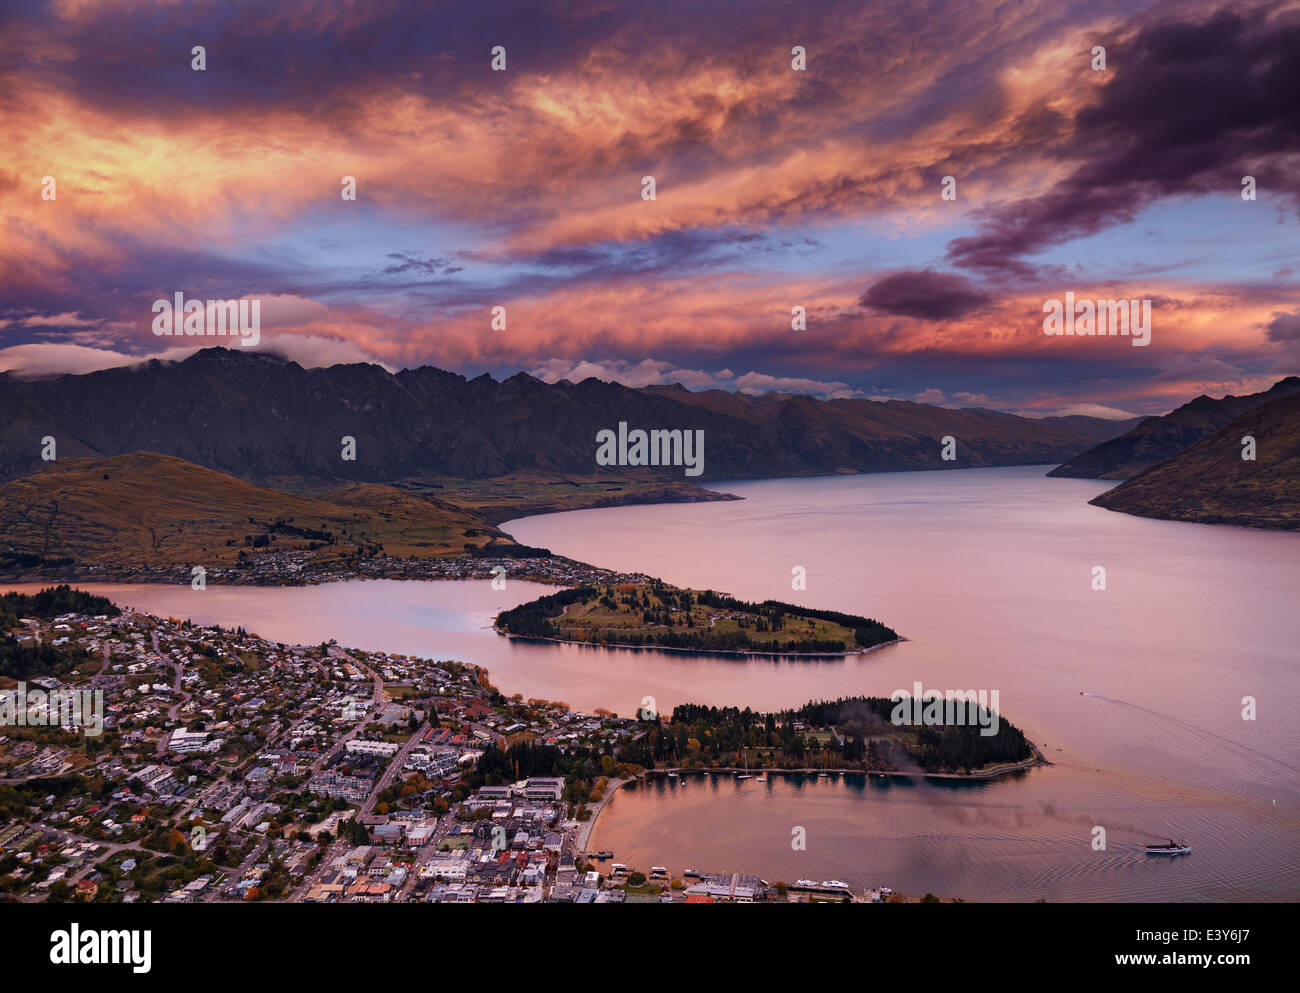 Queenstown cityscape with Wakatipu lake and Remarkables Mountains at sunset, New Zealand - Stock Image